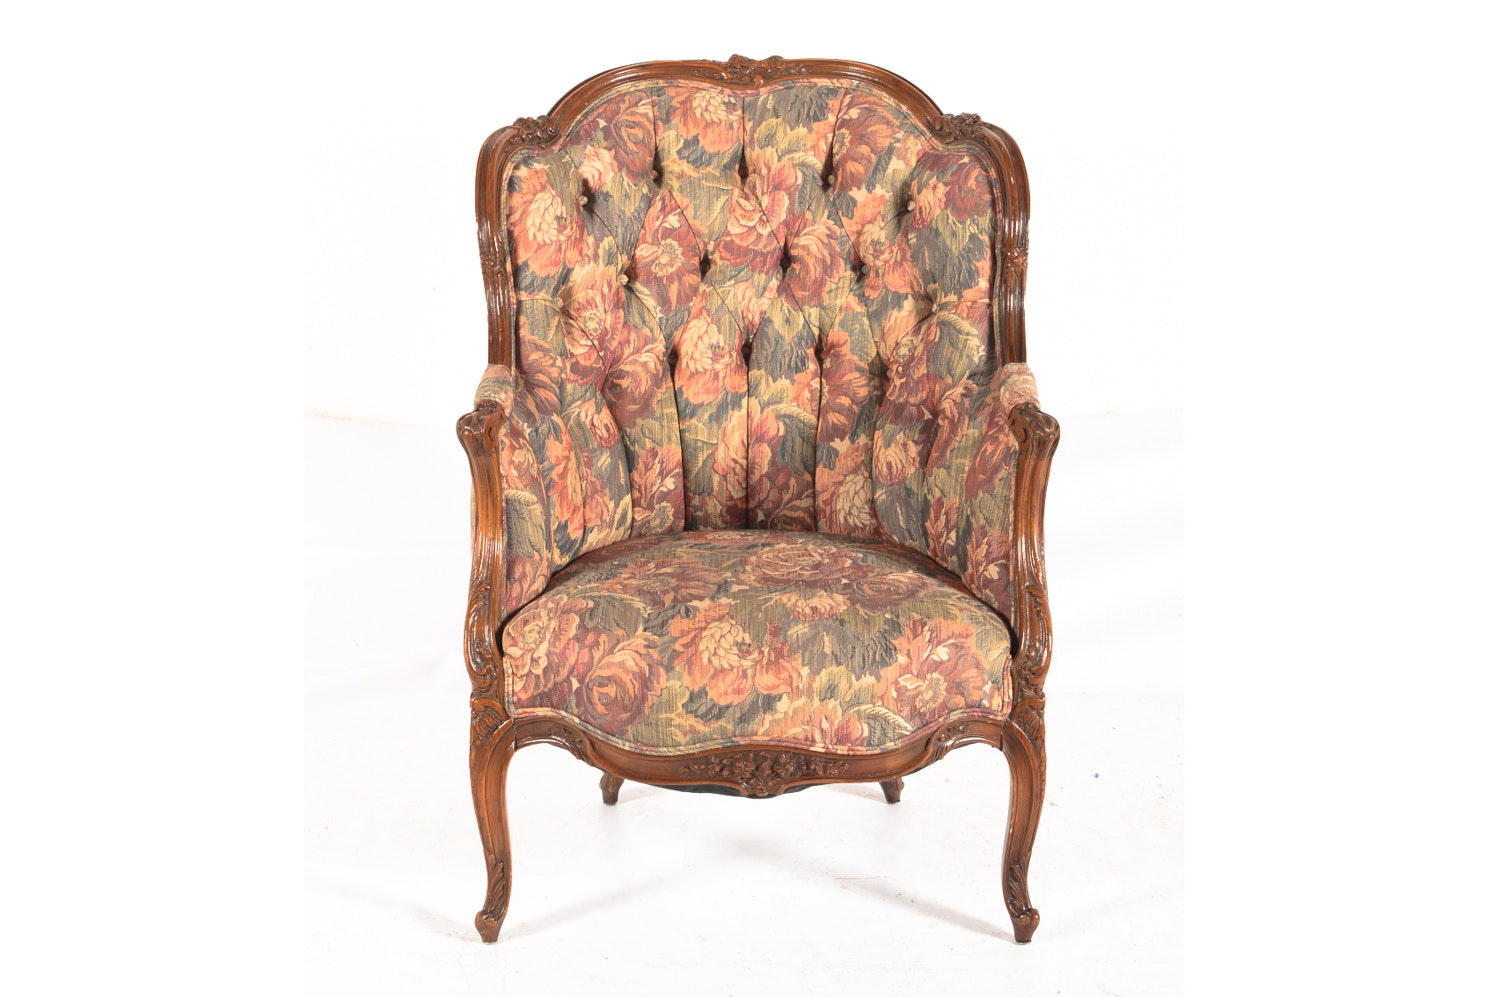 Vintage French Provincial Style Floral Upholstered Armchair